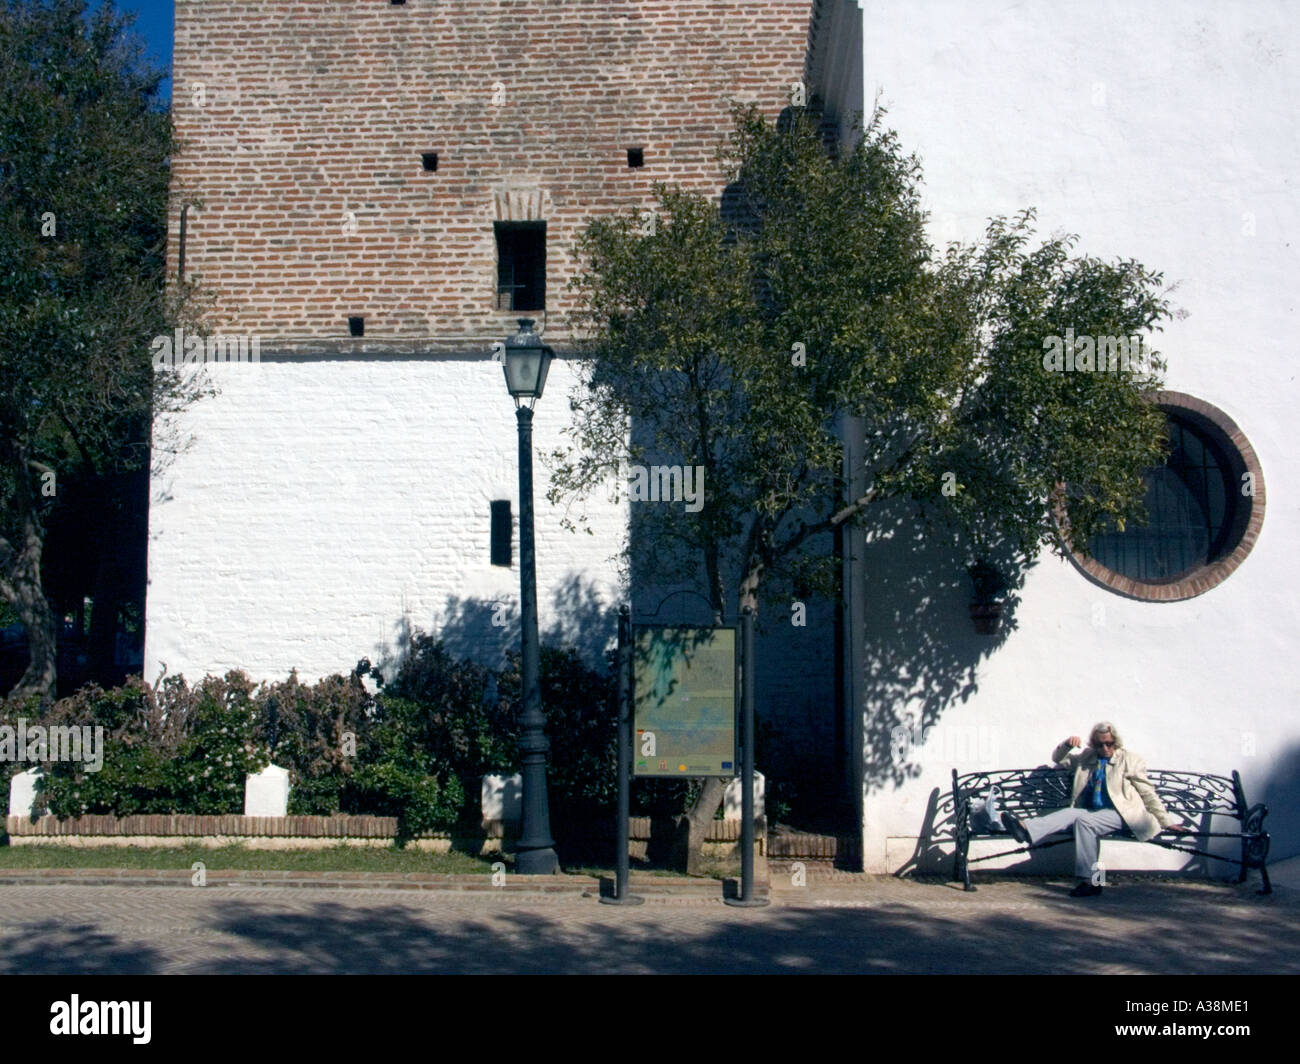 Woman rests on Bench outside the Church of the Immaculate Conception rest resting reclining sitting bench 16th 16 Stock Photo